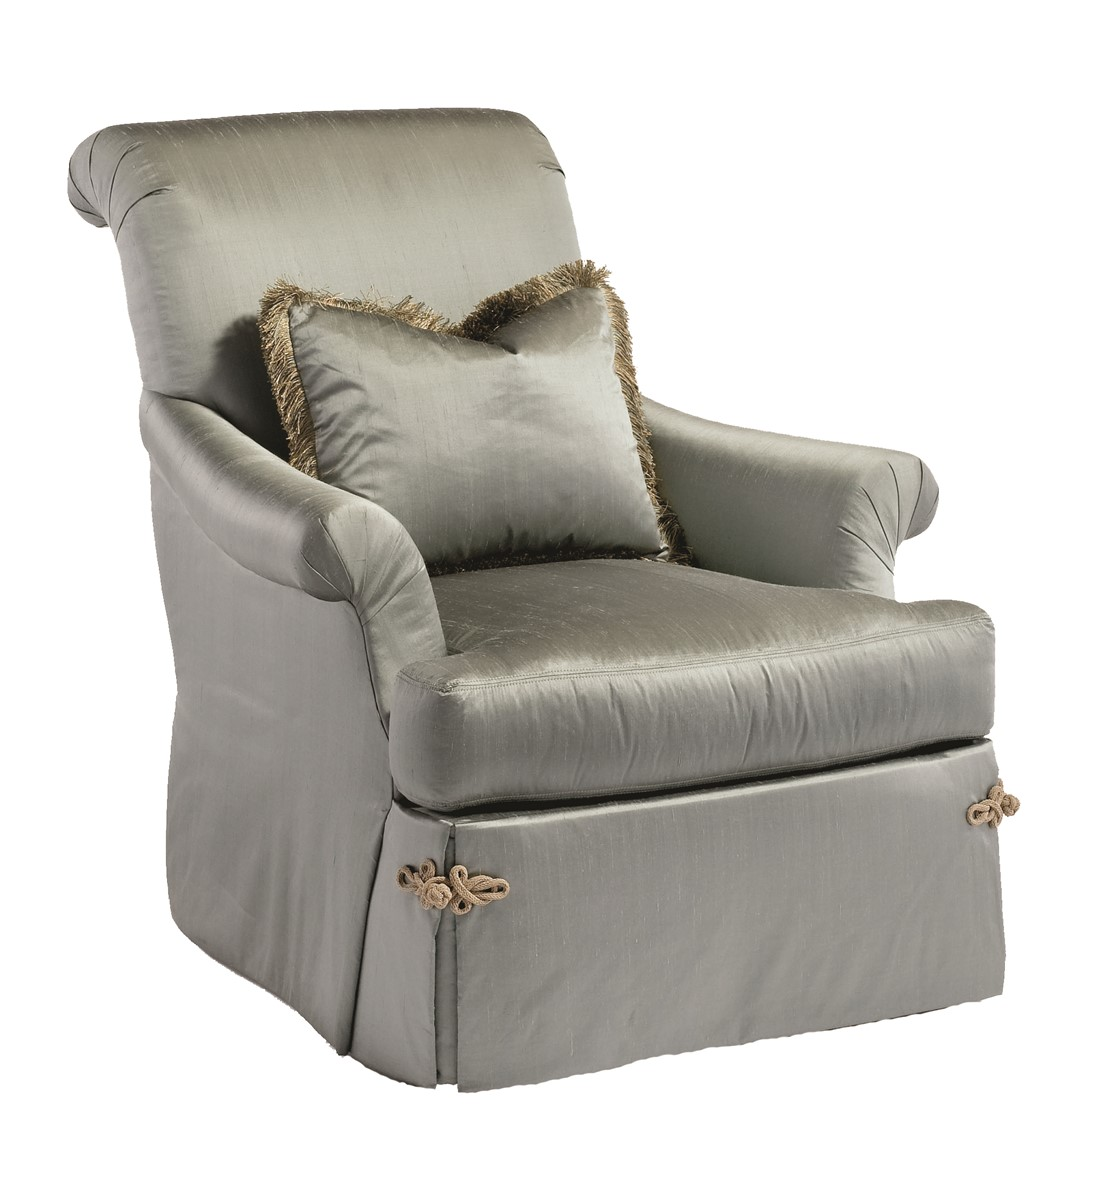 swivel chair quotes antique wooden chairs pictures sleigh u0770 1 chaddock collection our